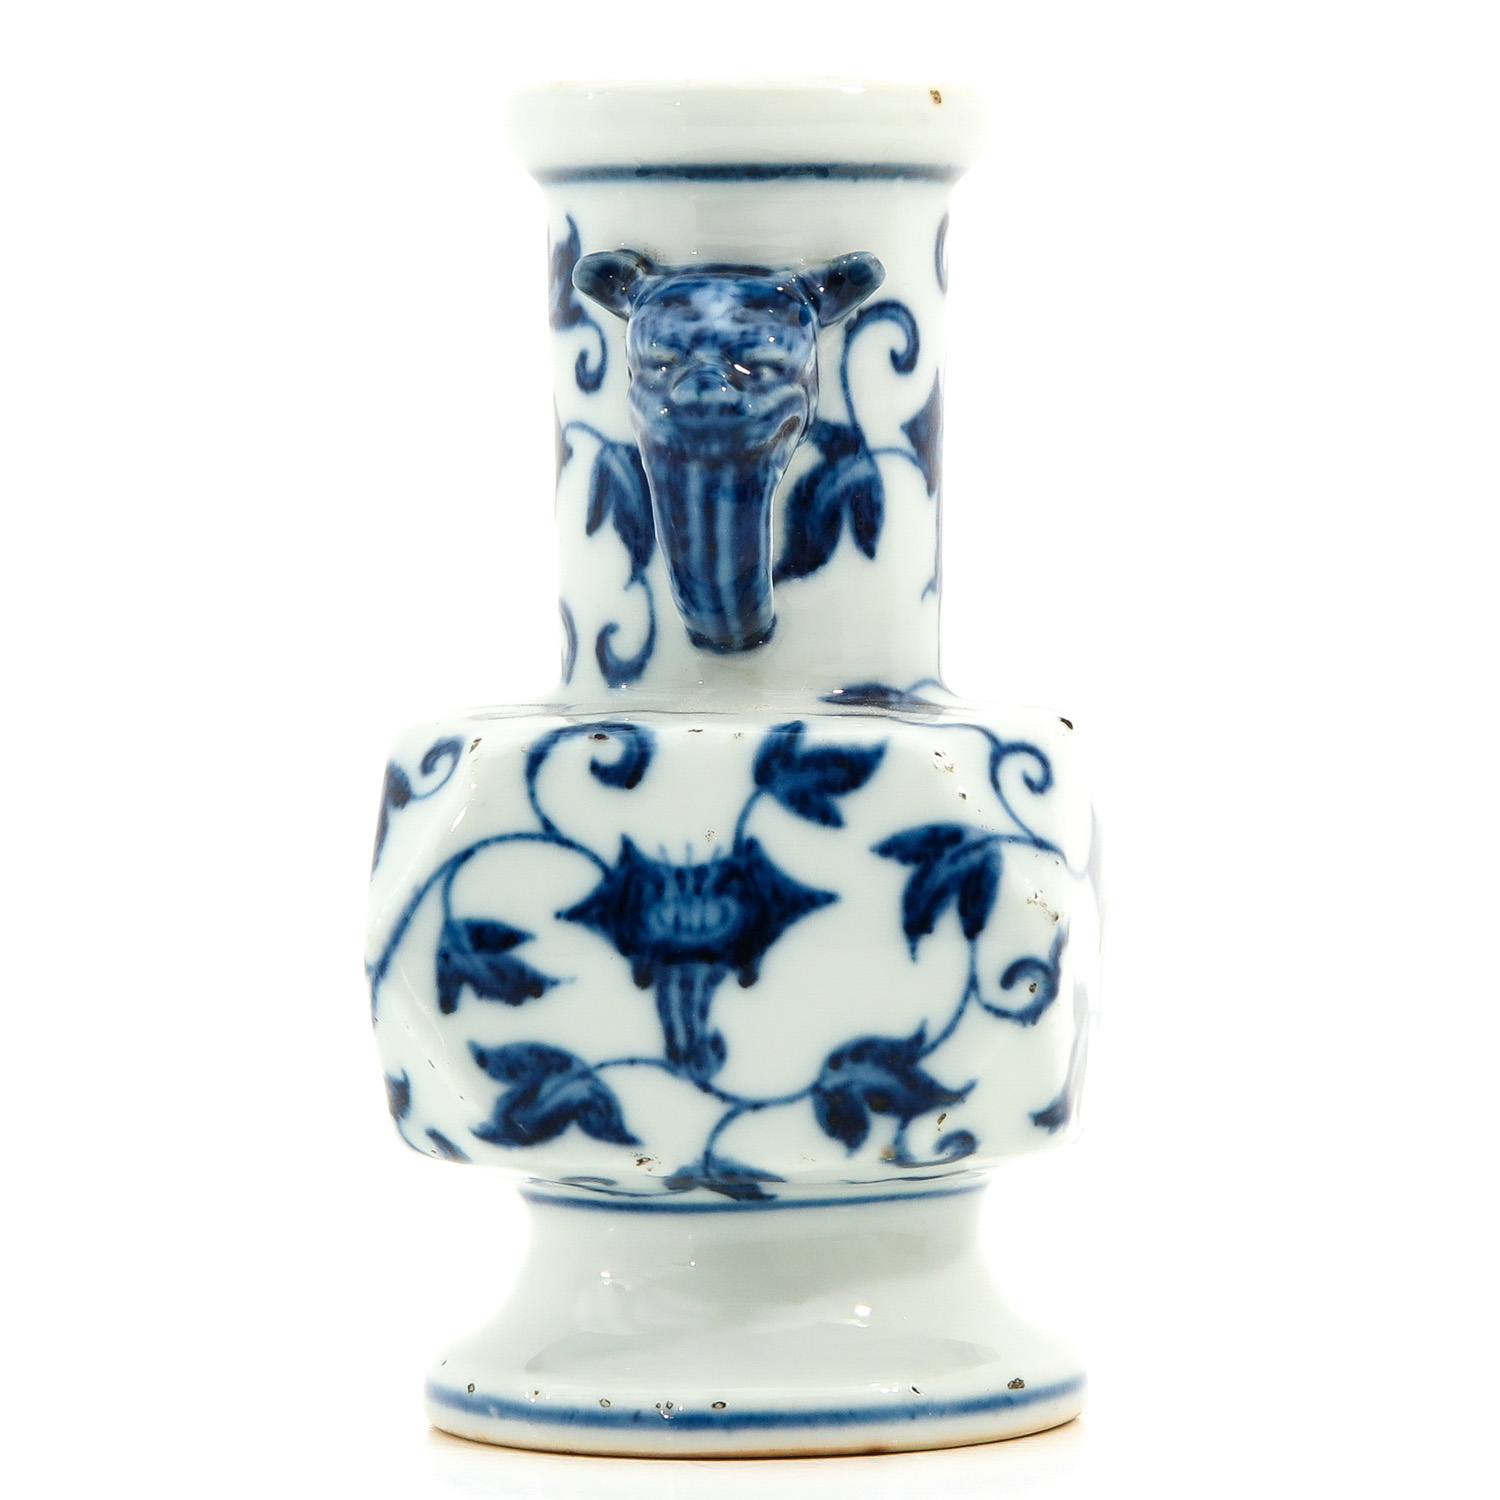 A Blue and White Vase - Image 4 of 10